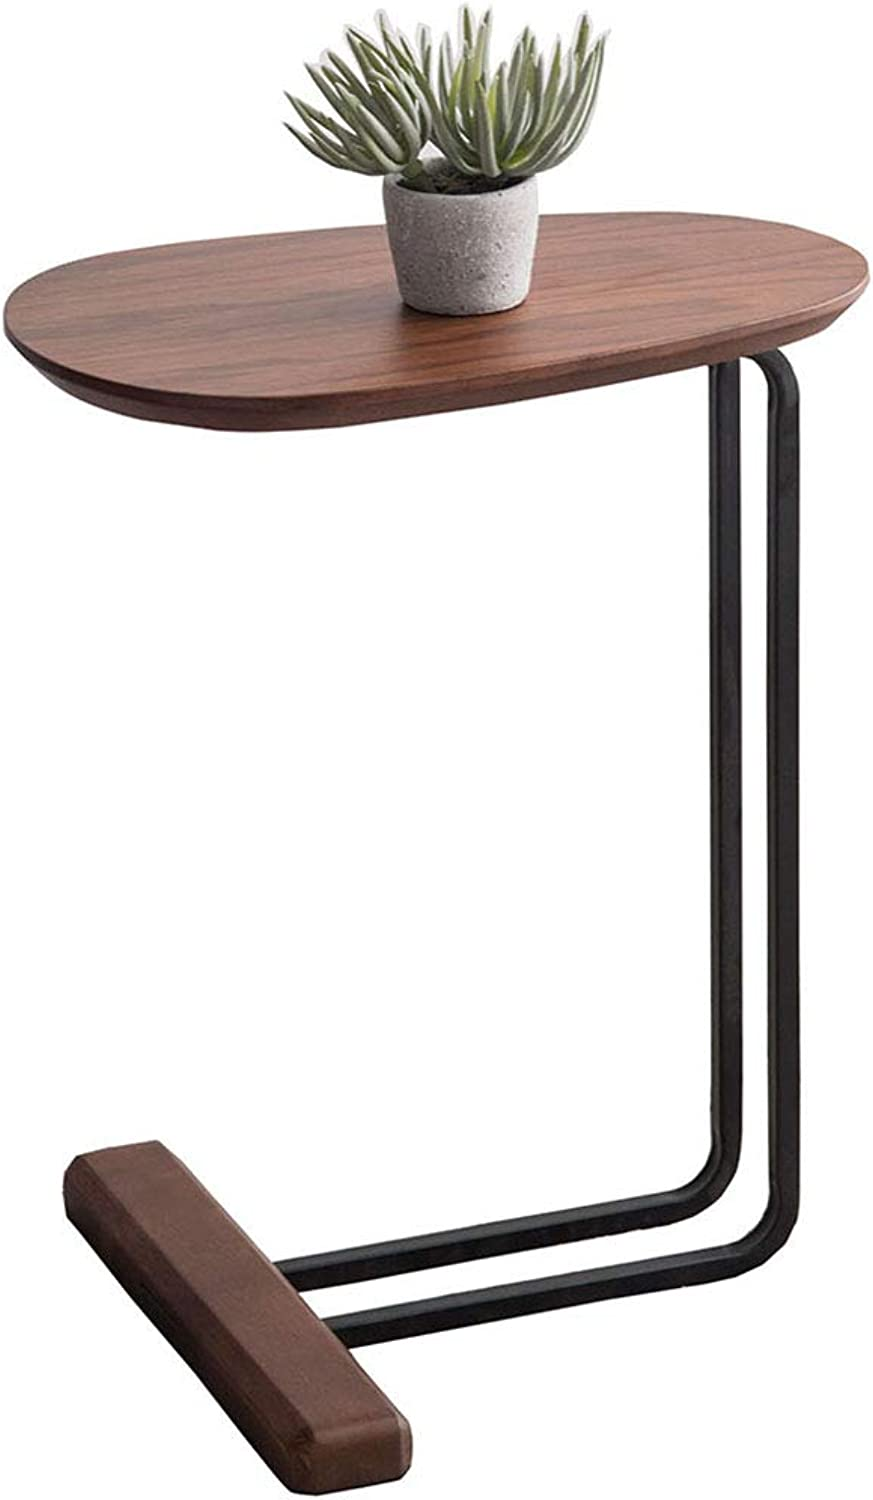 Patio Snack Coffee Table Nightstands Display Rack Accent Couch Furniture Narrow Chair Home Décor Products for Living Room